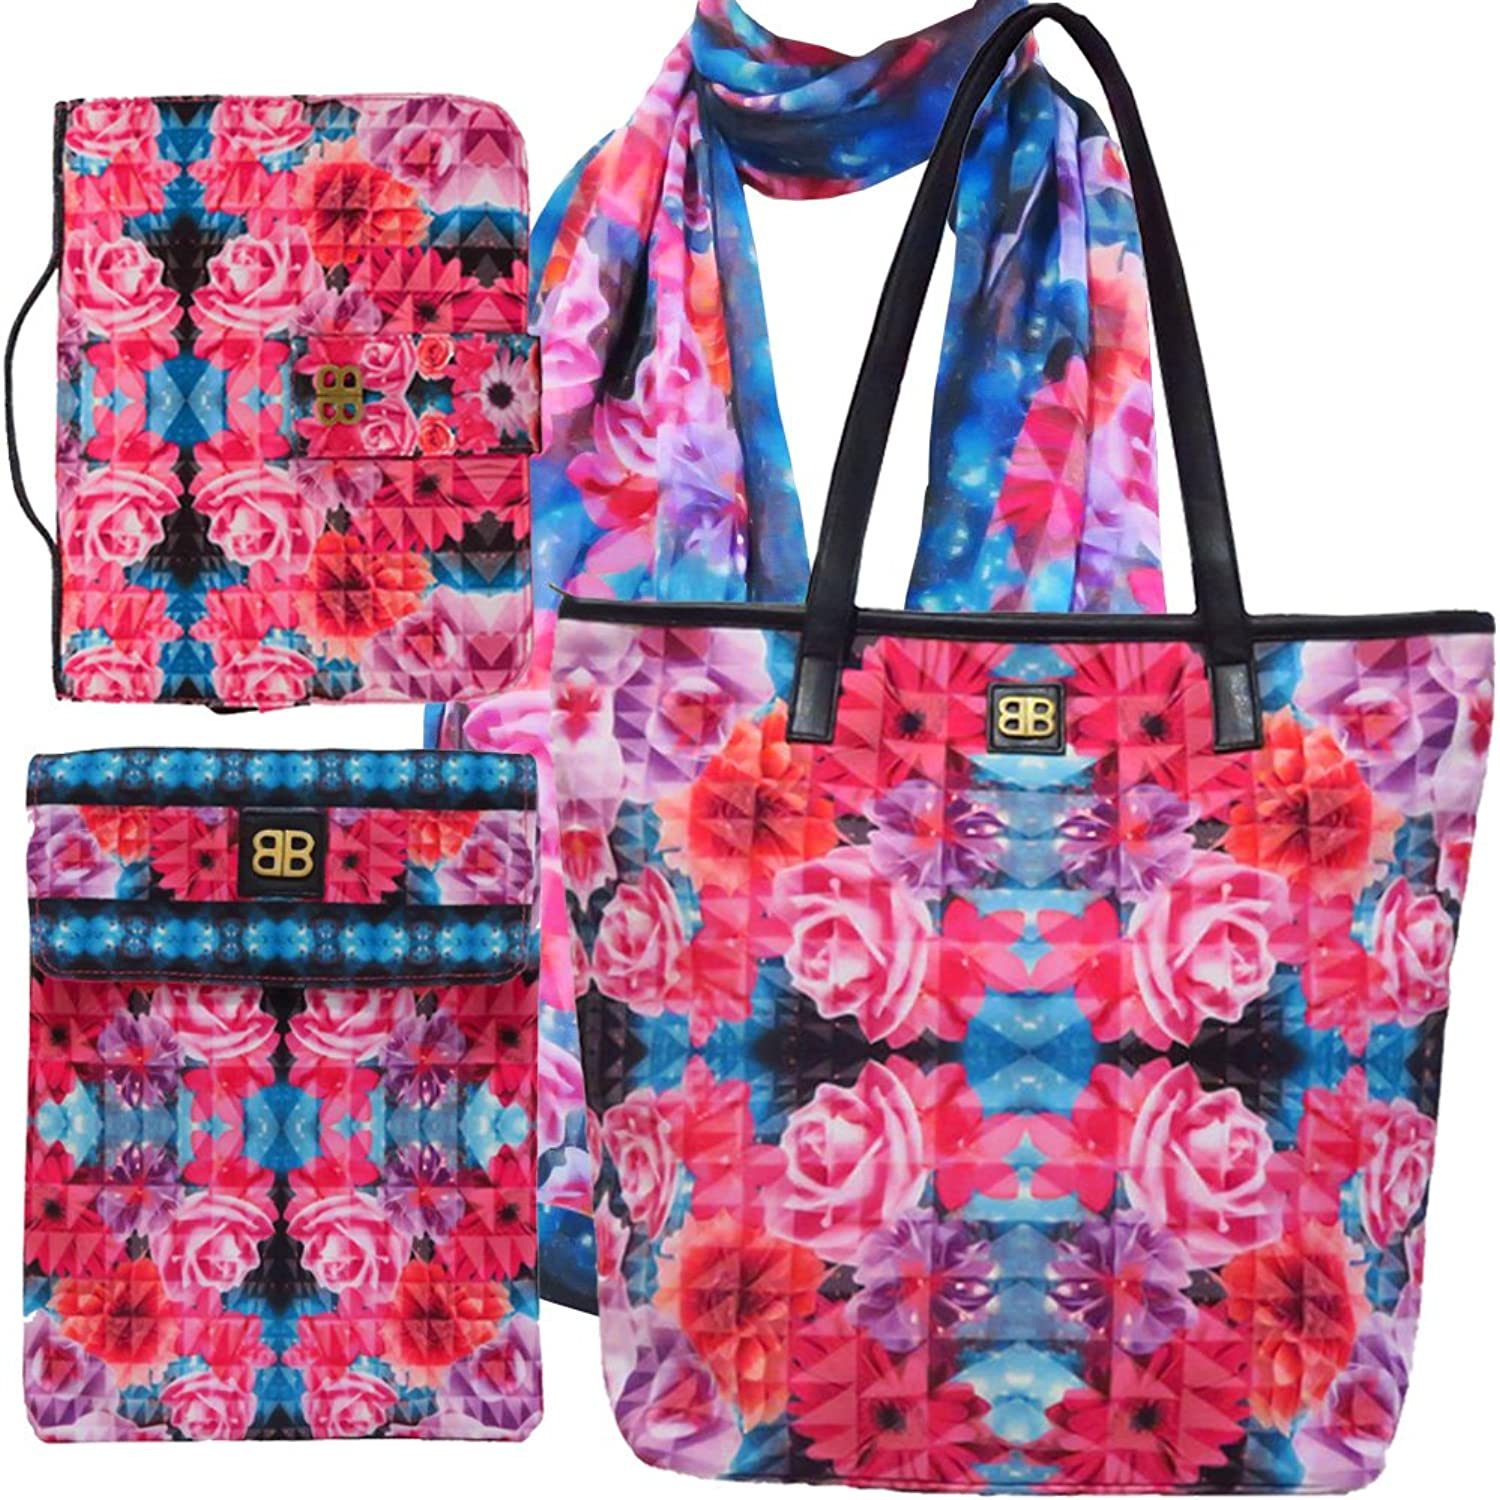 Bagabook Charming Bouquet Set Tote Bag Scarf Executive Book Bible Cover Ipad Tablet Pouch